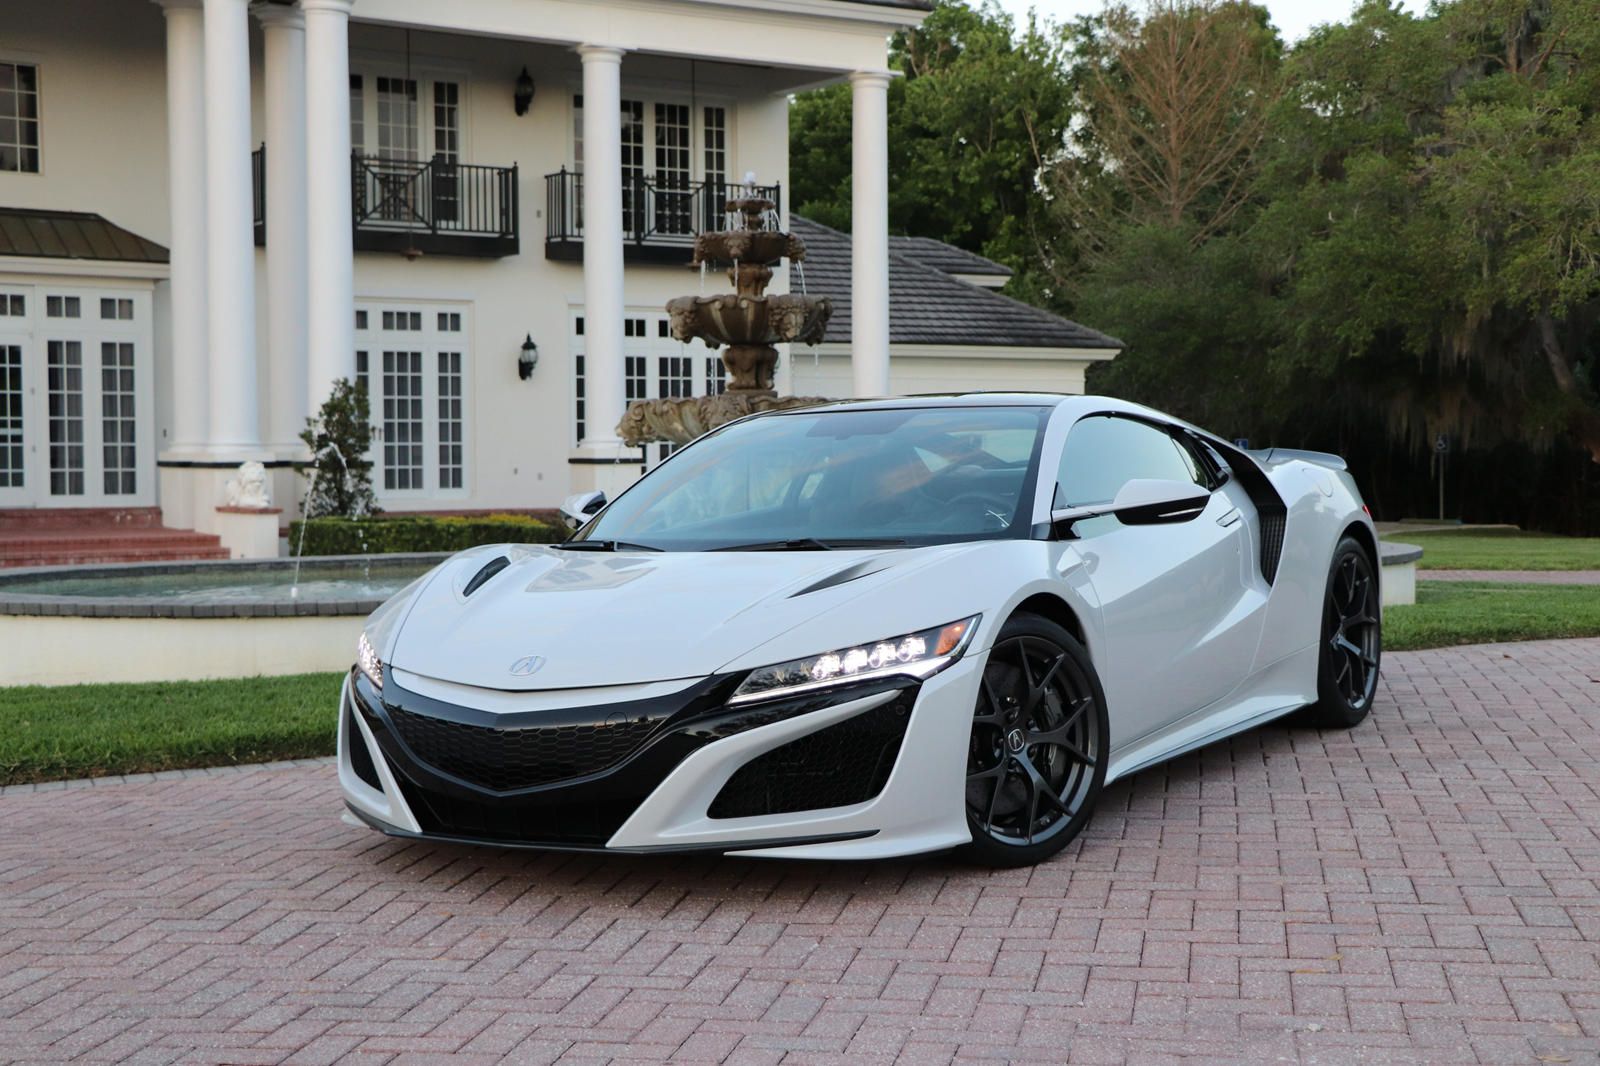 2019 Acura Nsx Test Drive Review Let The Past Die Kill It If You Have To Carbuzz